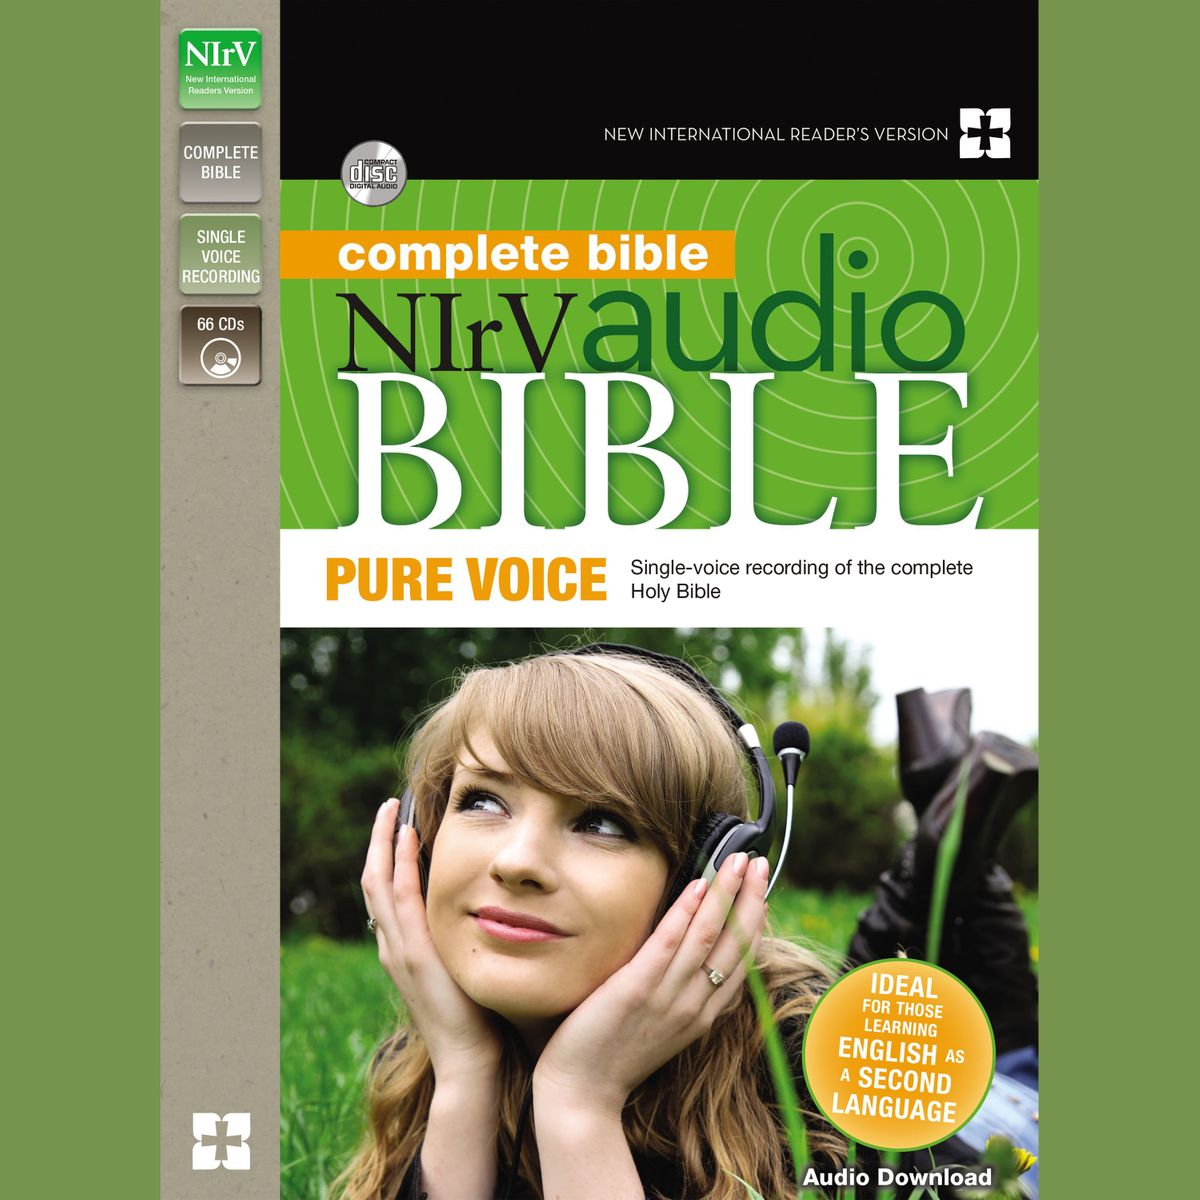 Pure Voice Audio Bible - New International Reader's Version, NIrV: Complete Bible - Audiobook